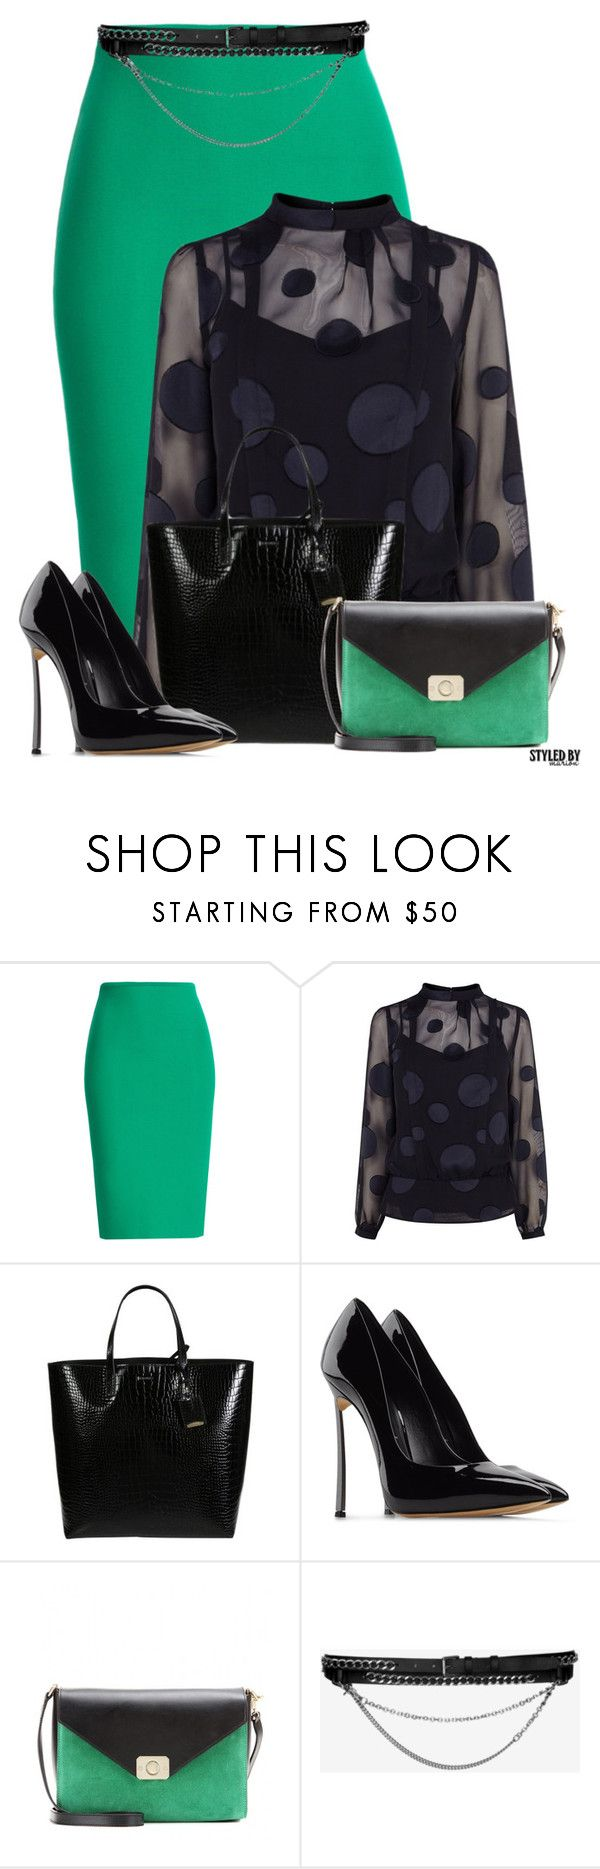 """""""Monday In The Office"""" by marion-fashionista-diva-miller ❤ liked on Polyvore featuring Roland Mouret, Karen Millen, Jil Sander, Casadei, Barbara Bui, WorkWear, officewear, businessattire and powerlook"""